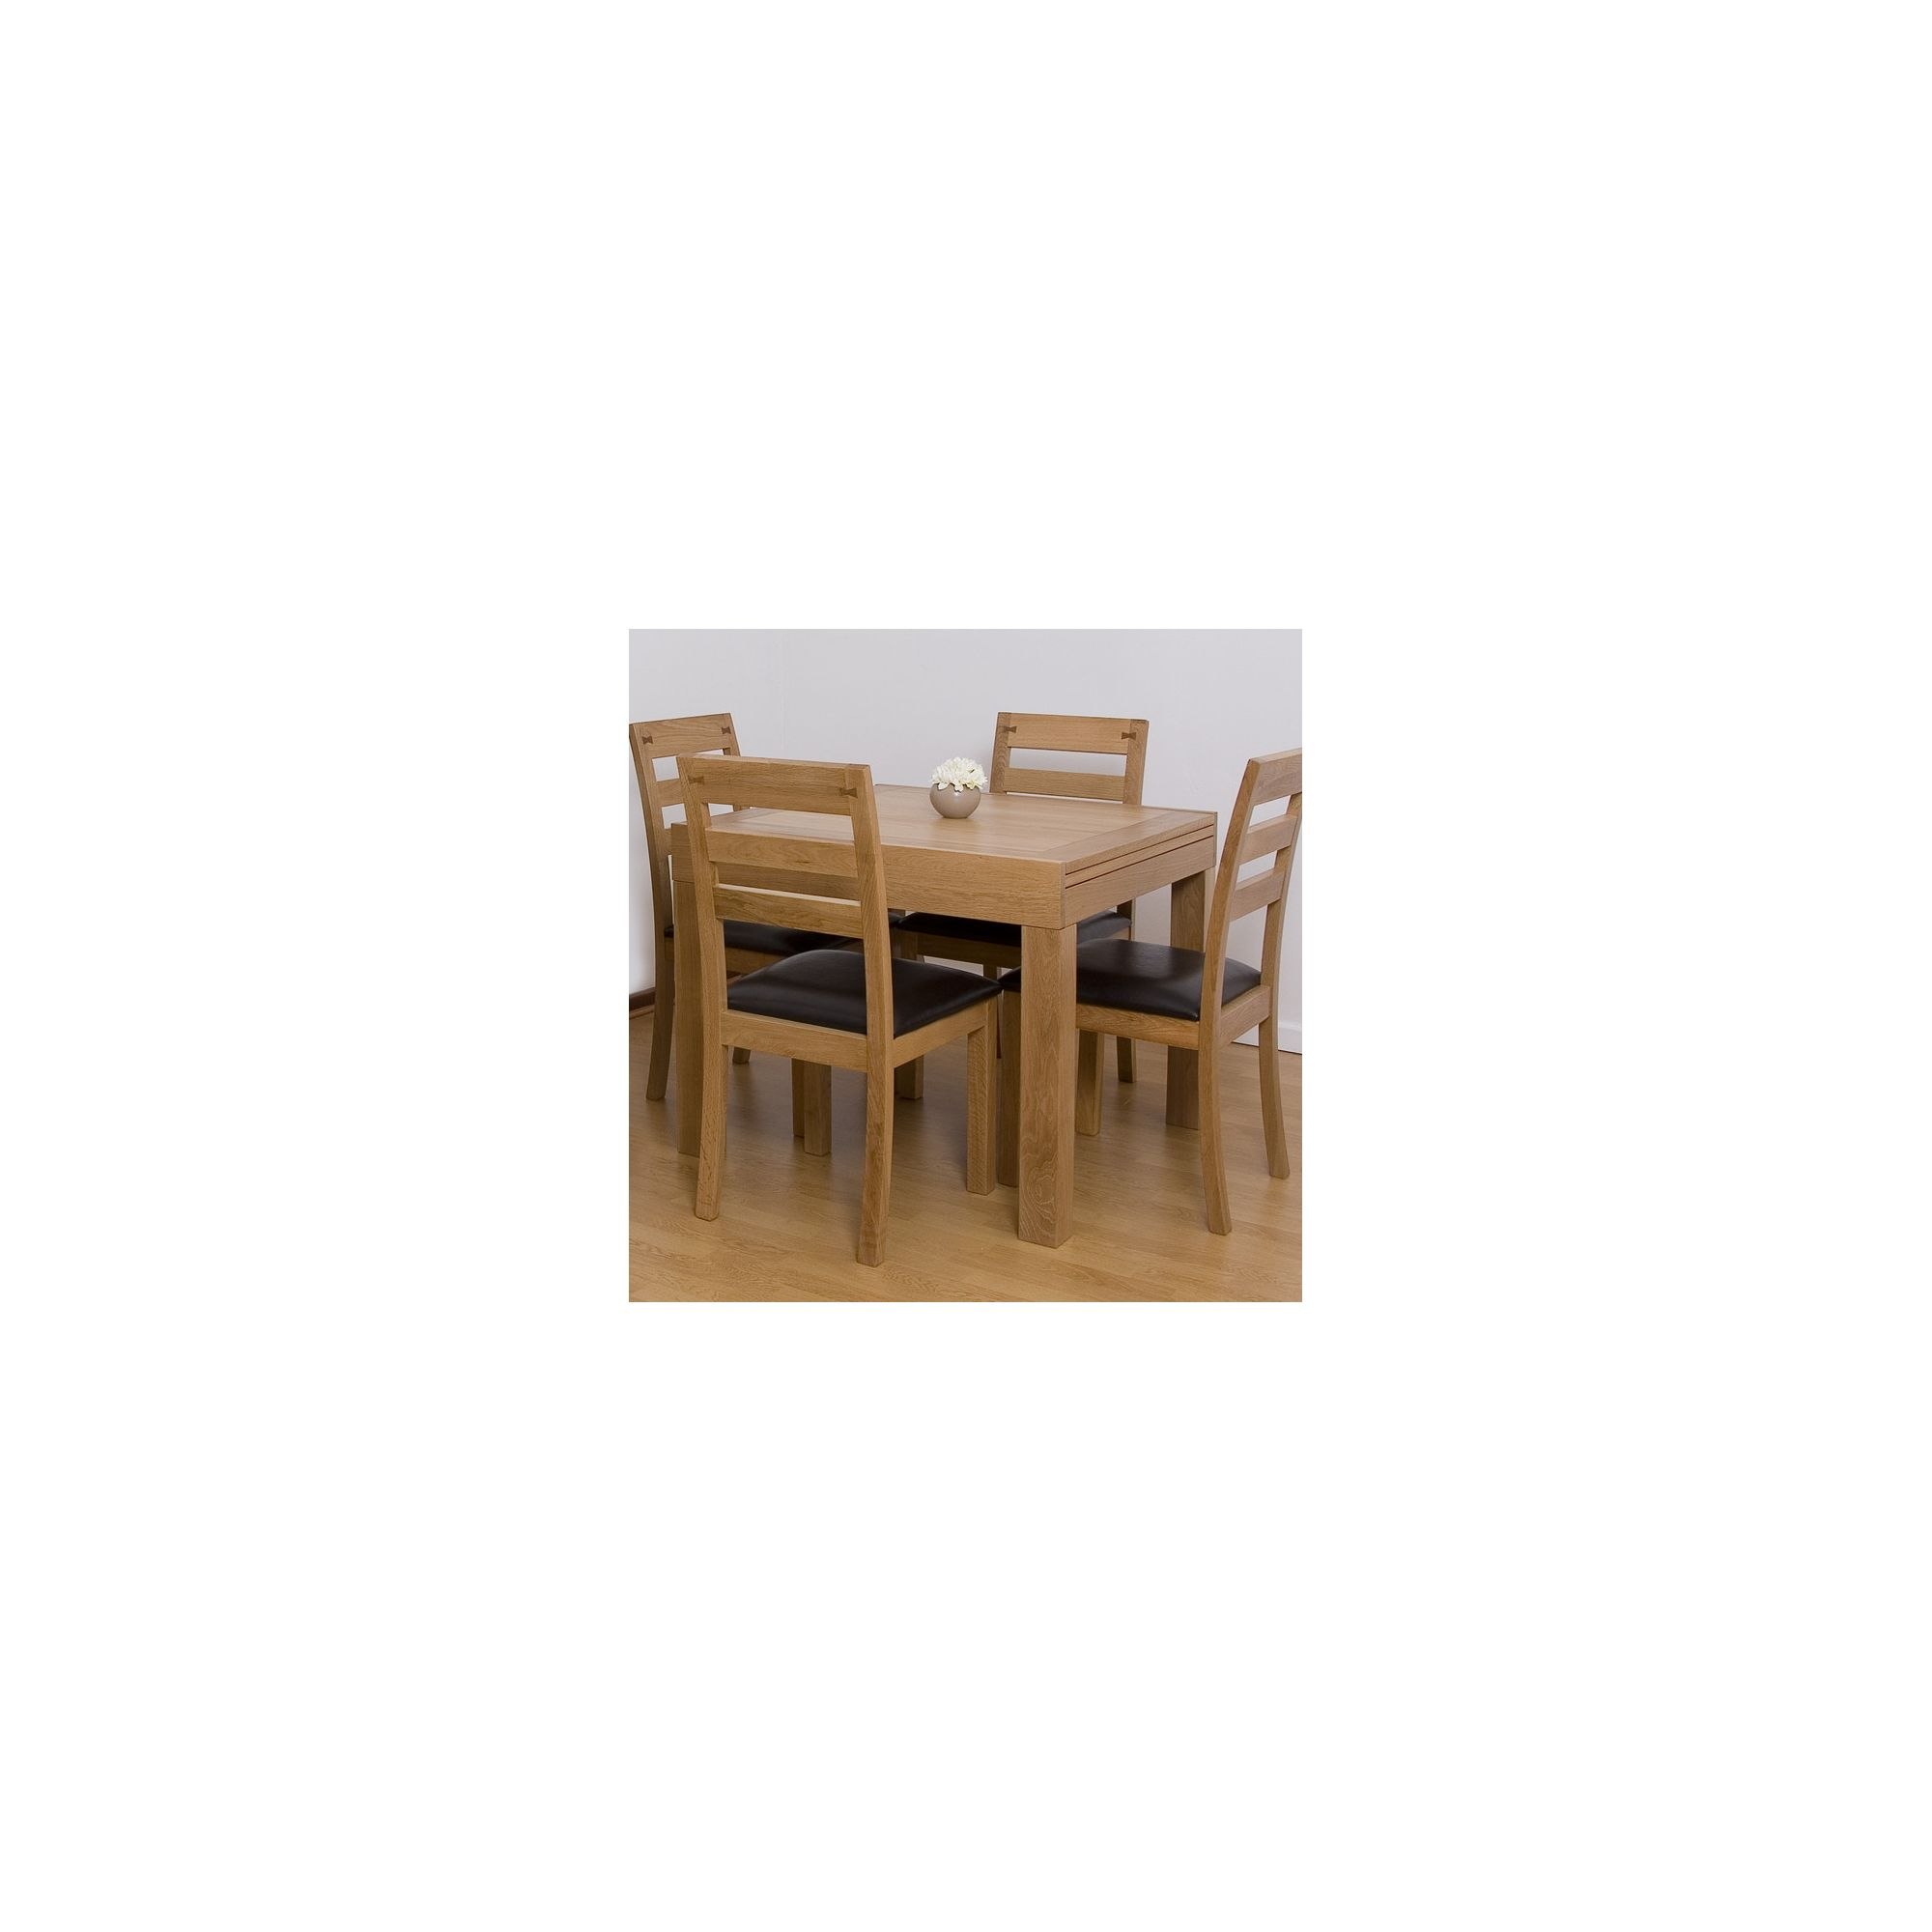 G&P Furniture 5 Piece Extending Dining Table Set at Tesco Direct